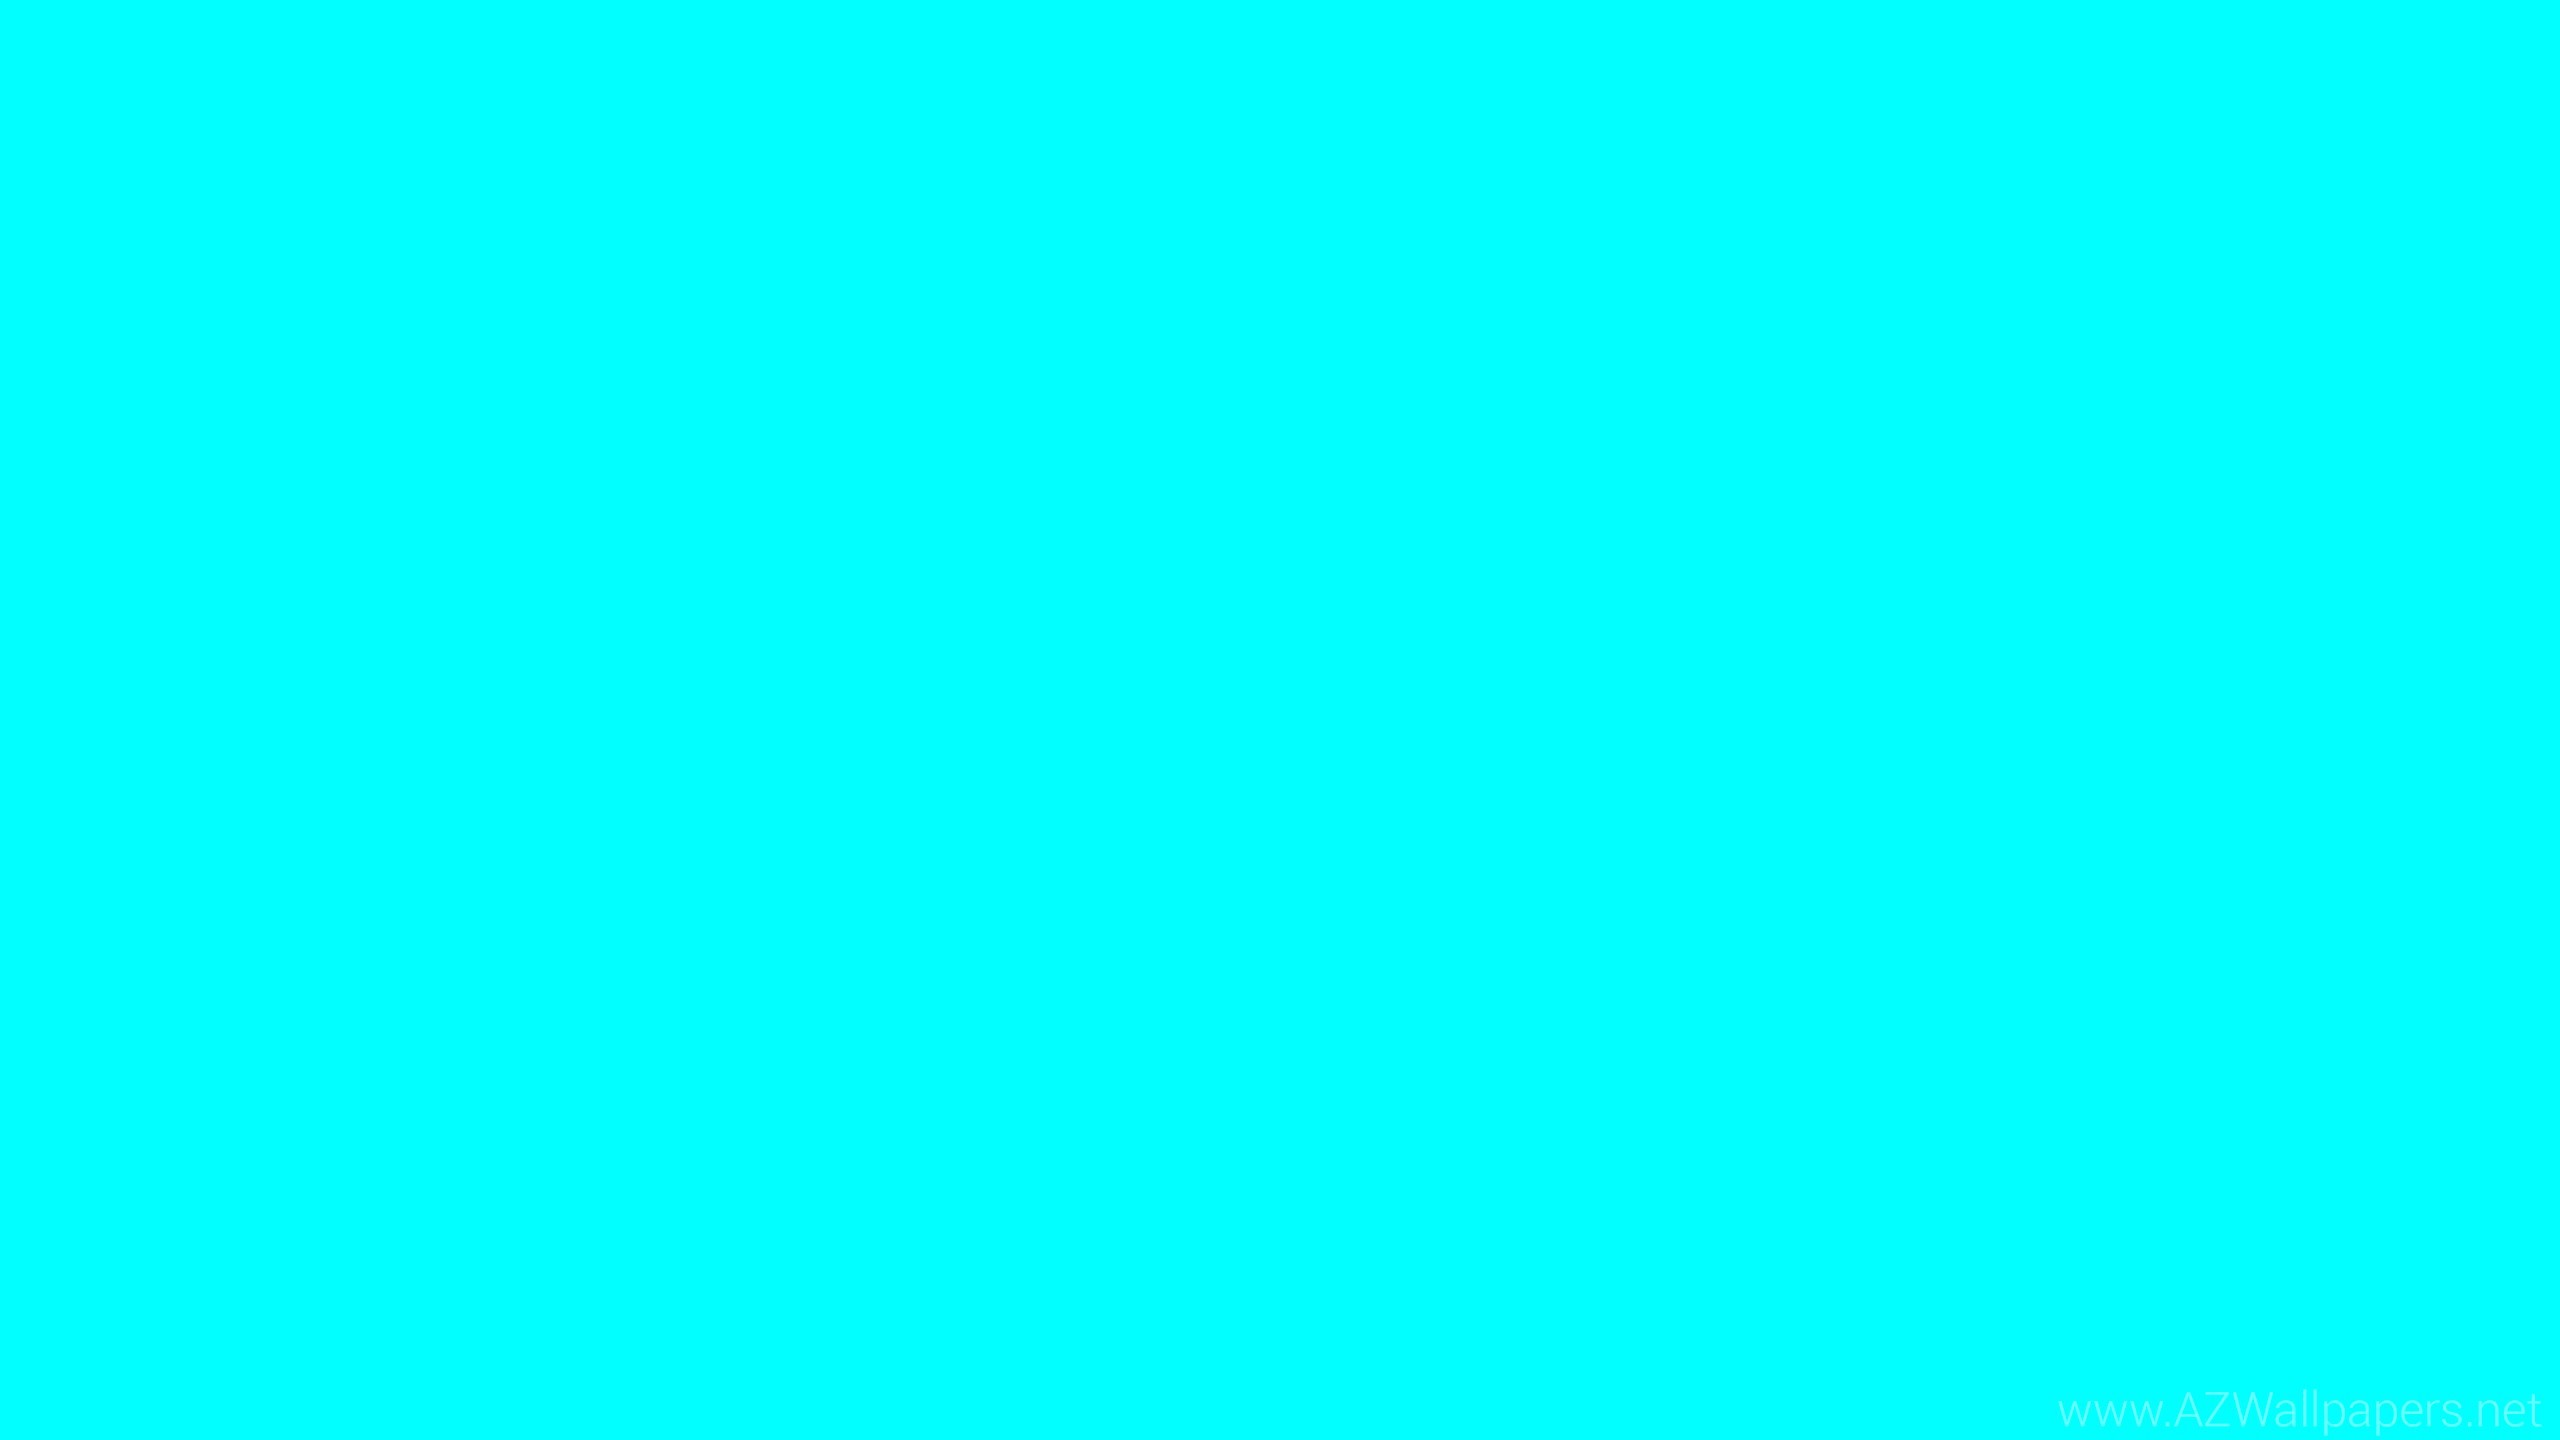 Cyan Solid Color Backgrounds